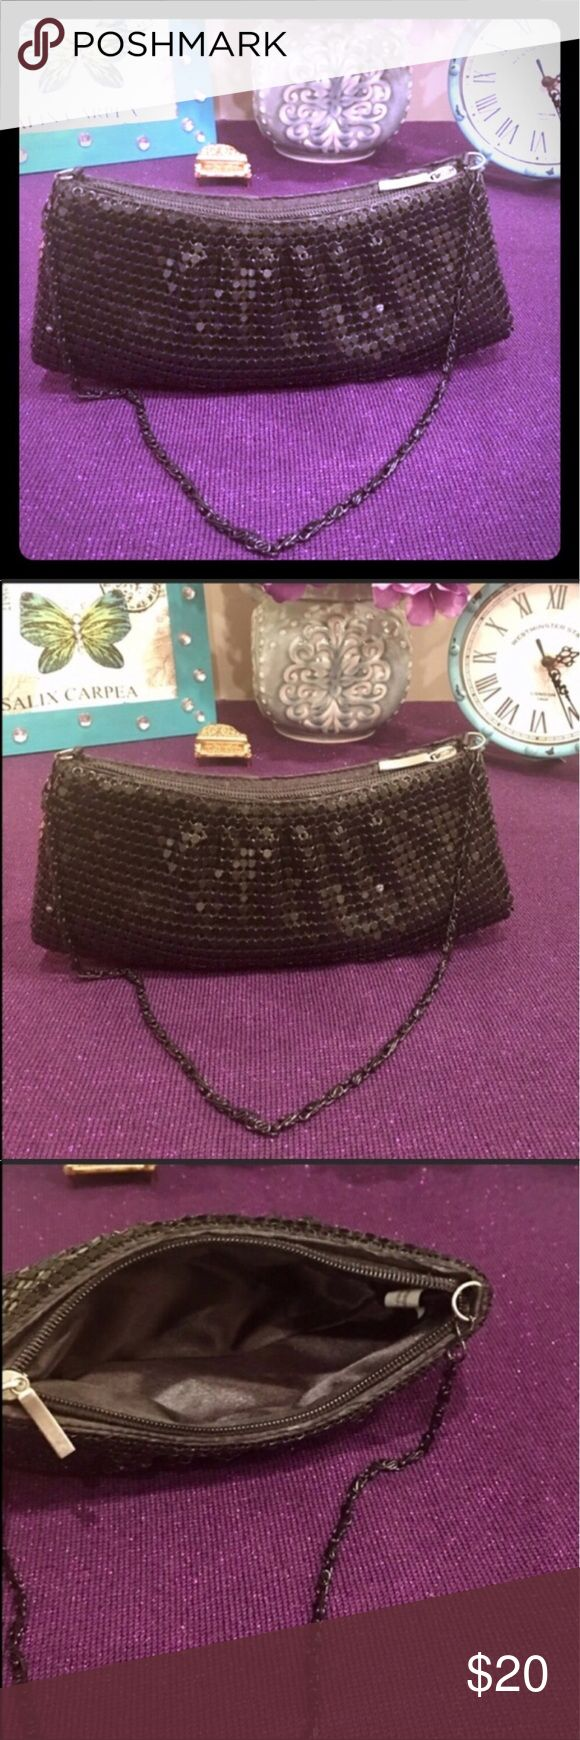 "Vintage Black duo 2 for 1 sequin Clutch & coin Gorgeous Vintage chained zipper sequin clutch with vintage zippered coin purse both excellent condition! Slight wear signs vintage Clutch 8.5"" x 4"" .5""  coin purse 5"" x 4 "". Bags Clutches & Wristlets"